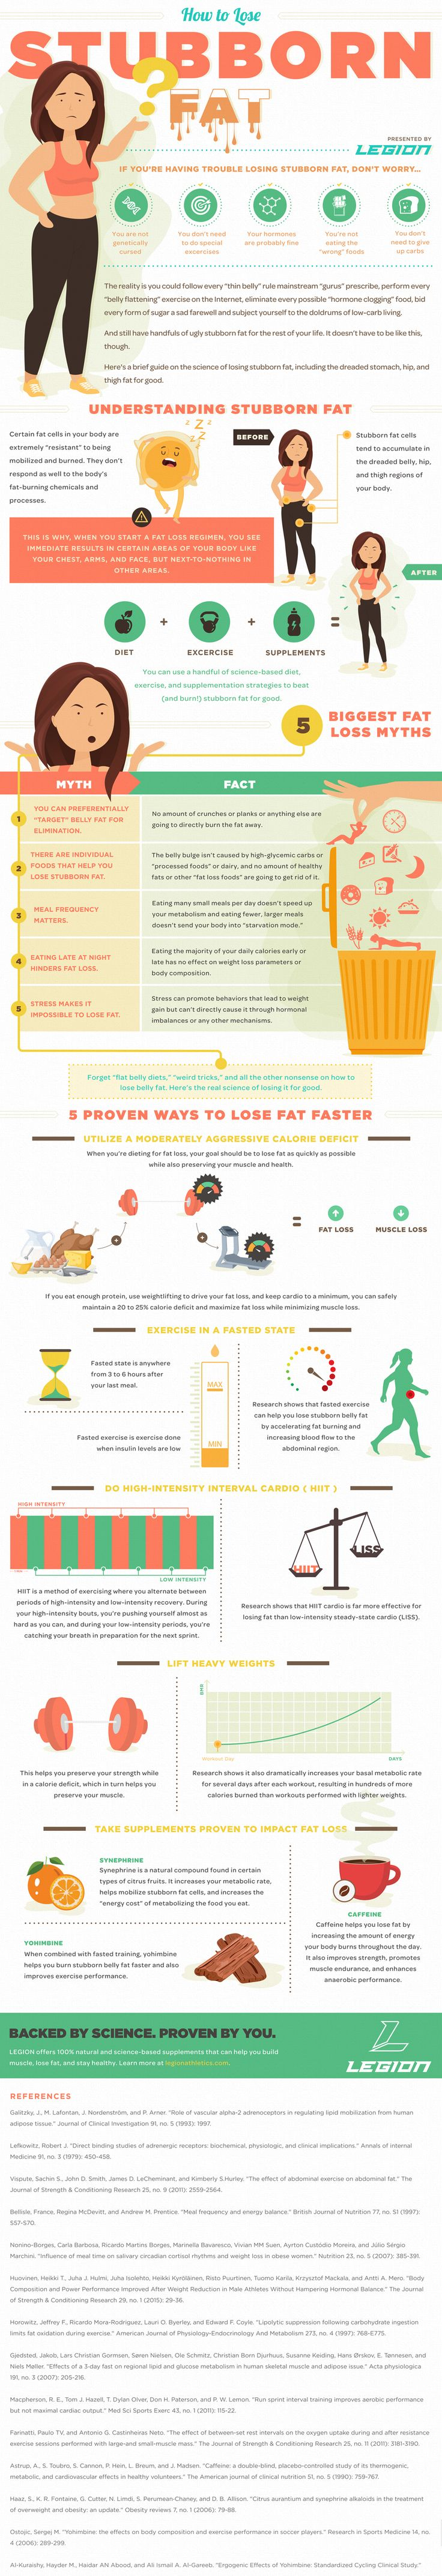 "How to Lose Stubborn Fat Once and For All | Forget ""flat belly diets,"" ""weird tricks,"" and other nonsense about how to lose stubborn fat. Here's the real story and science of losing it for good."